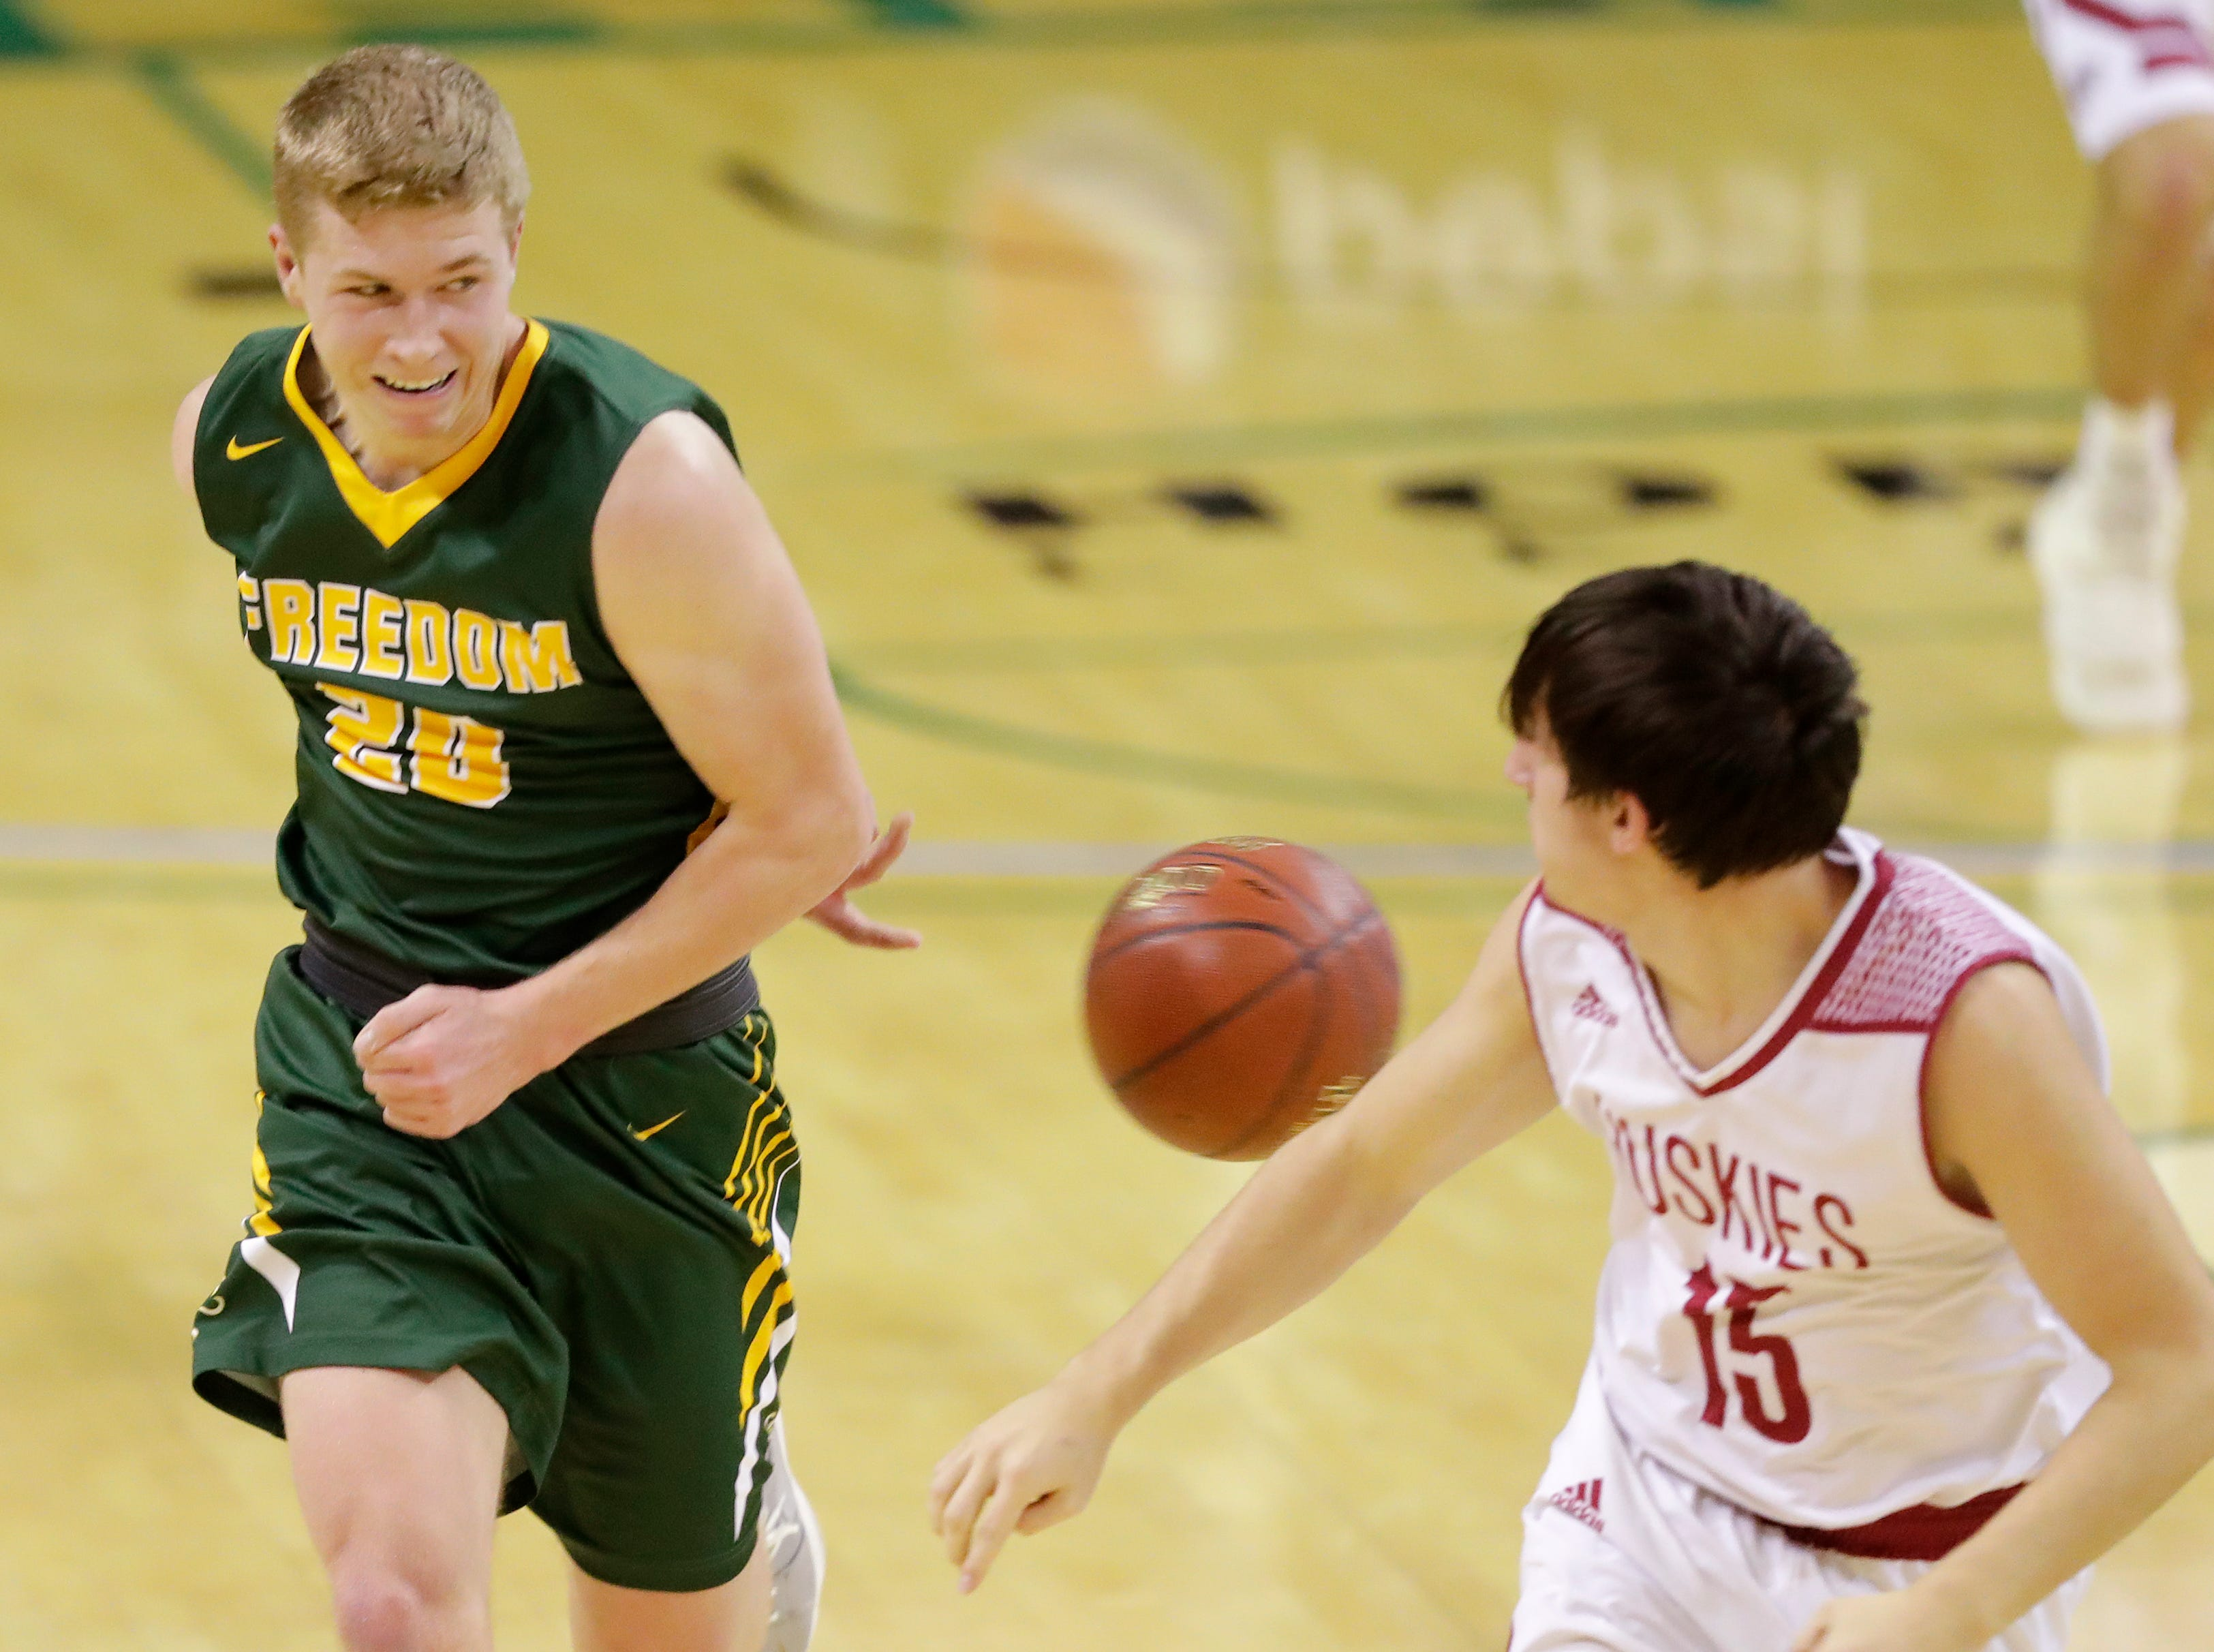 Freedom's Bryce Vandenberg (20) throws a behind the back pass against New Holstein at the Sun Drop Shootout at the Kress Center on Thursday, December 27, 2018 in Green Bay, Wis.